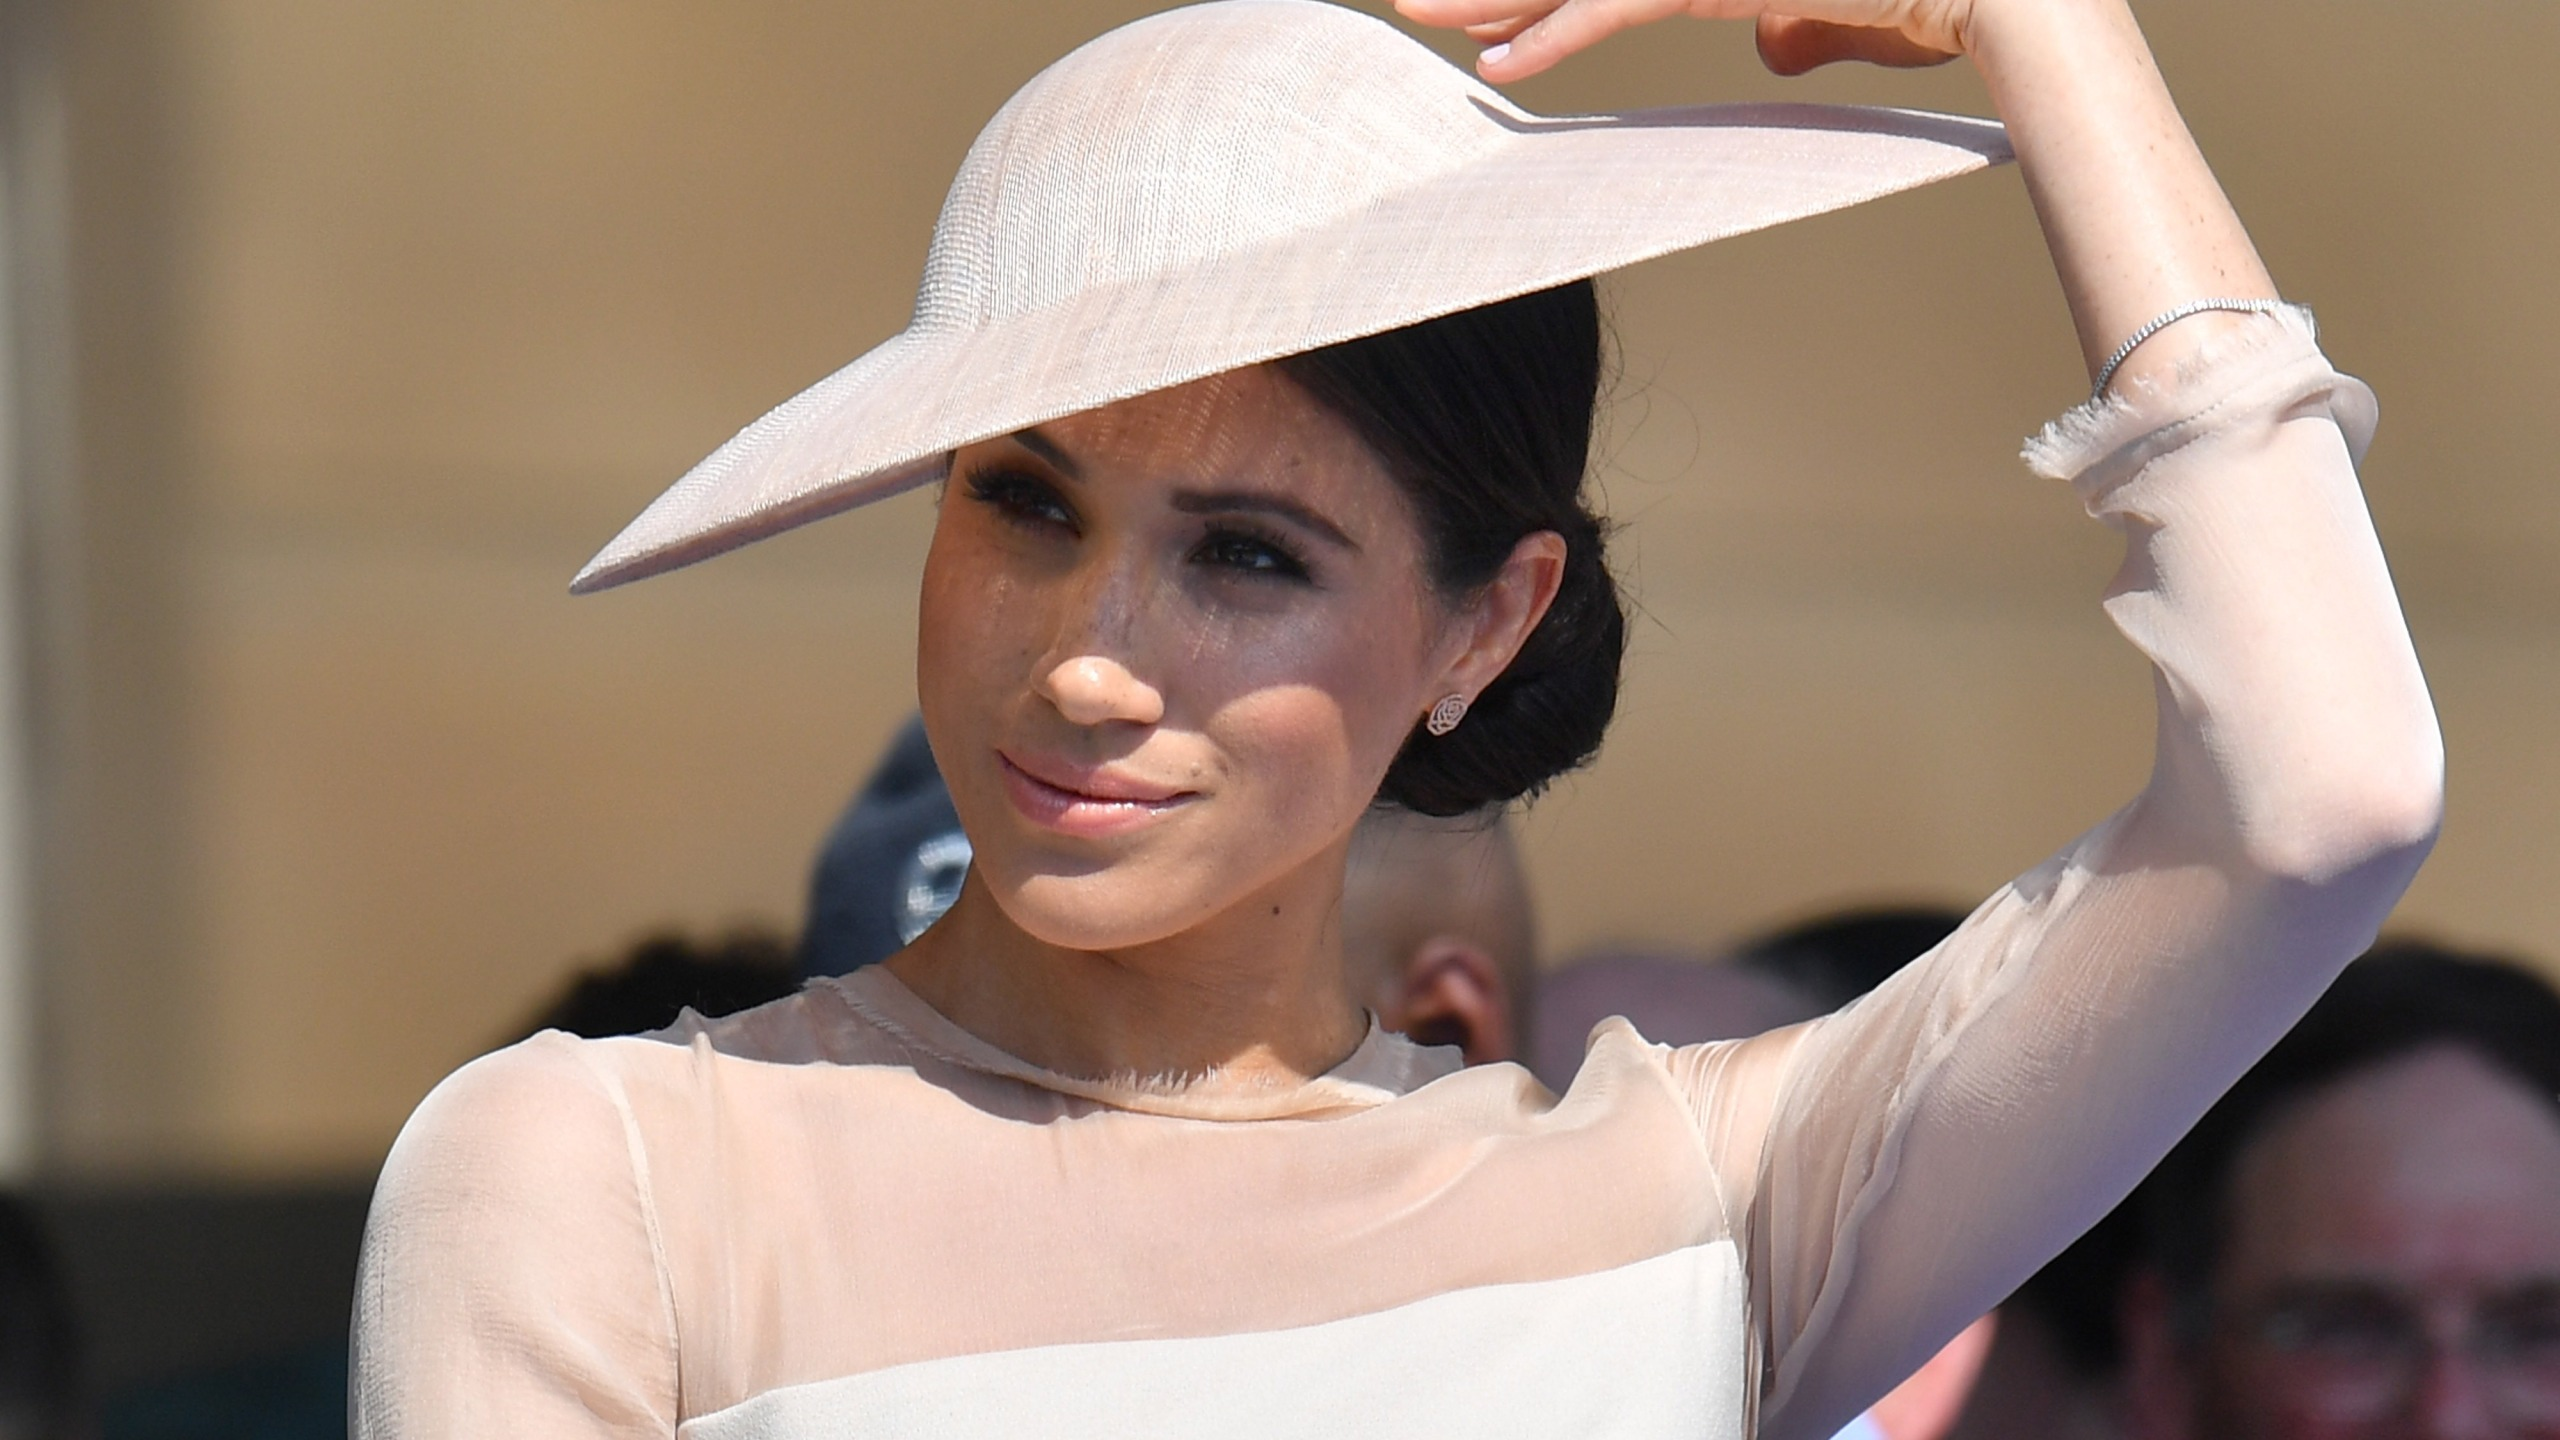 Meghan, Duchess of Sussex, attends The Prince of Wales' 70th birthday celebration at Buckingham Palace on May 22, 2018. (Credit: Dominic Lipinski / Getty Images)